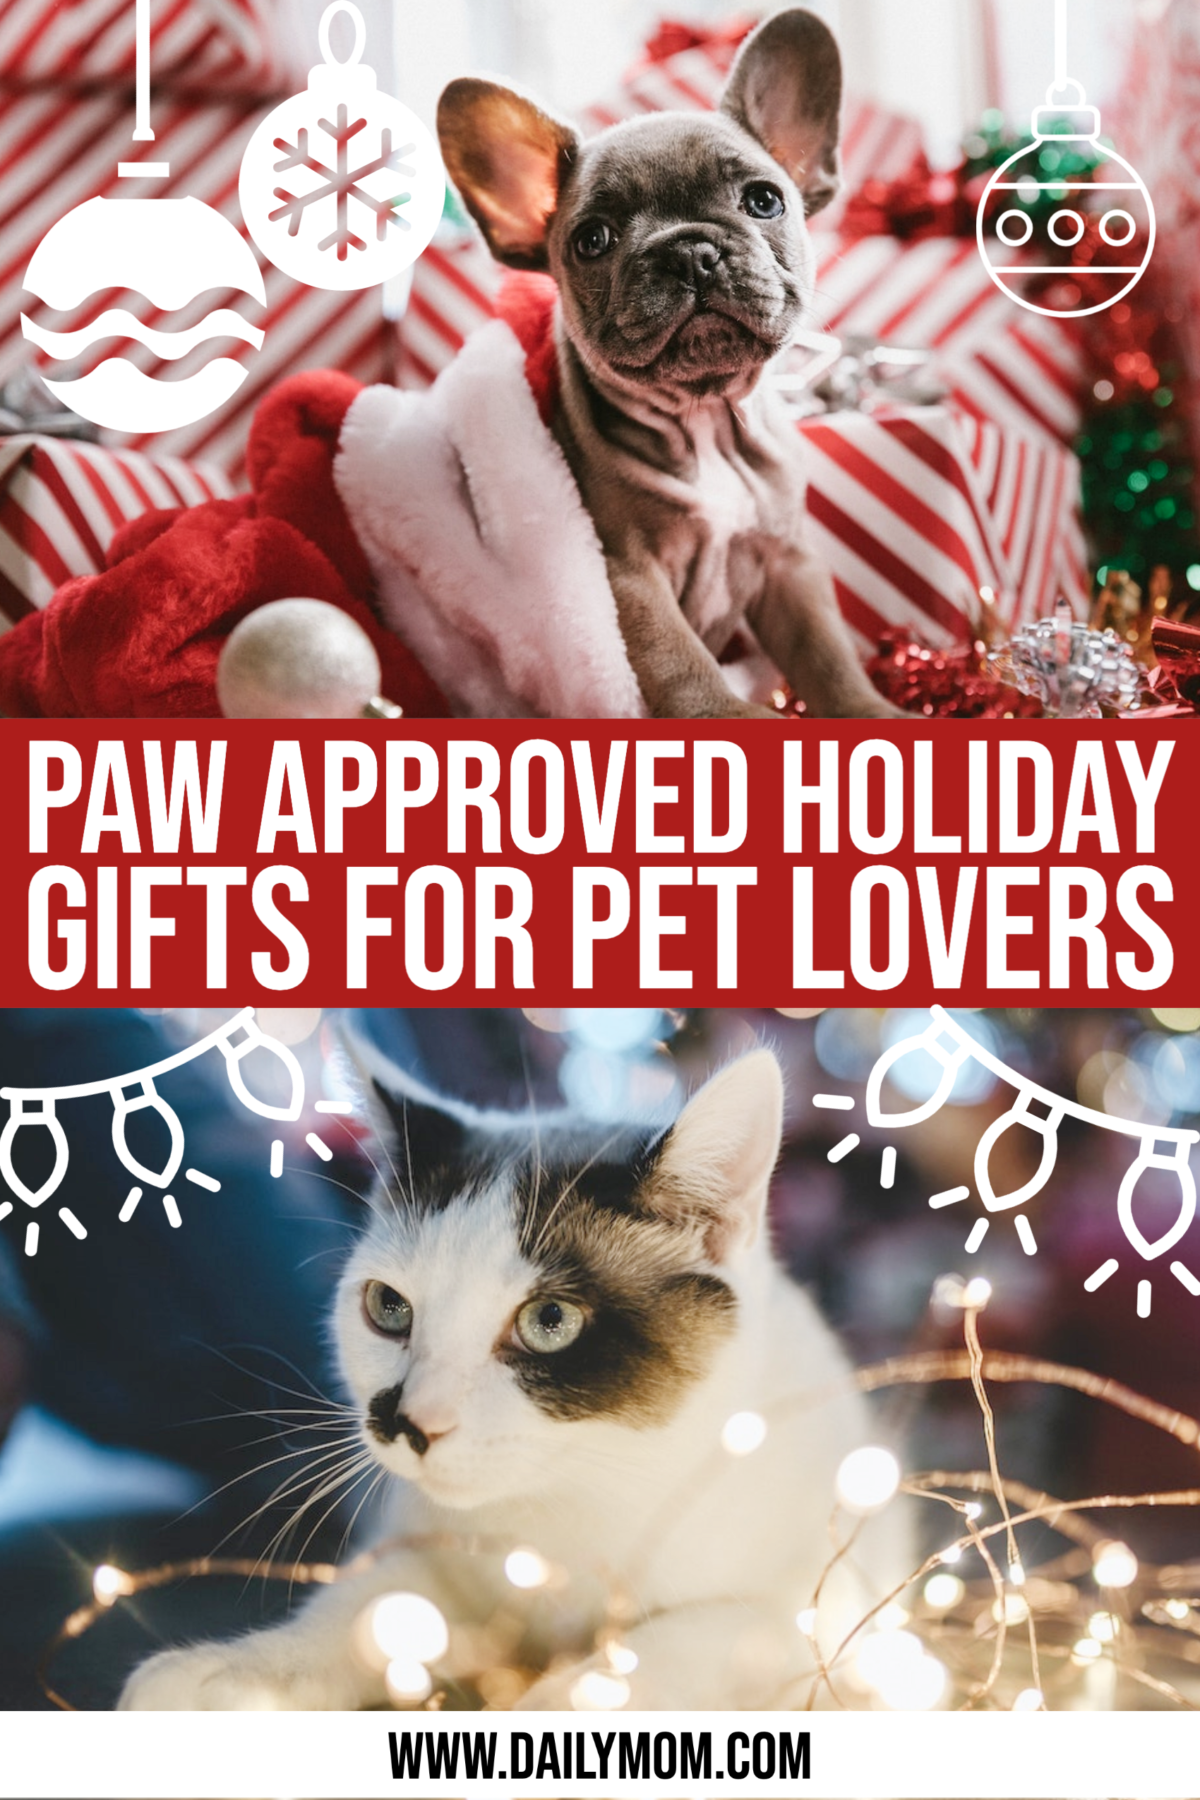 13 Holiday Gifts For Pet Lovers That Are 4 Paws Approved